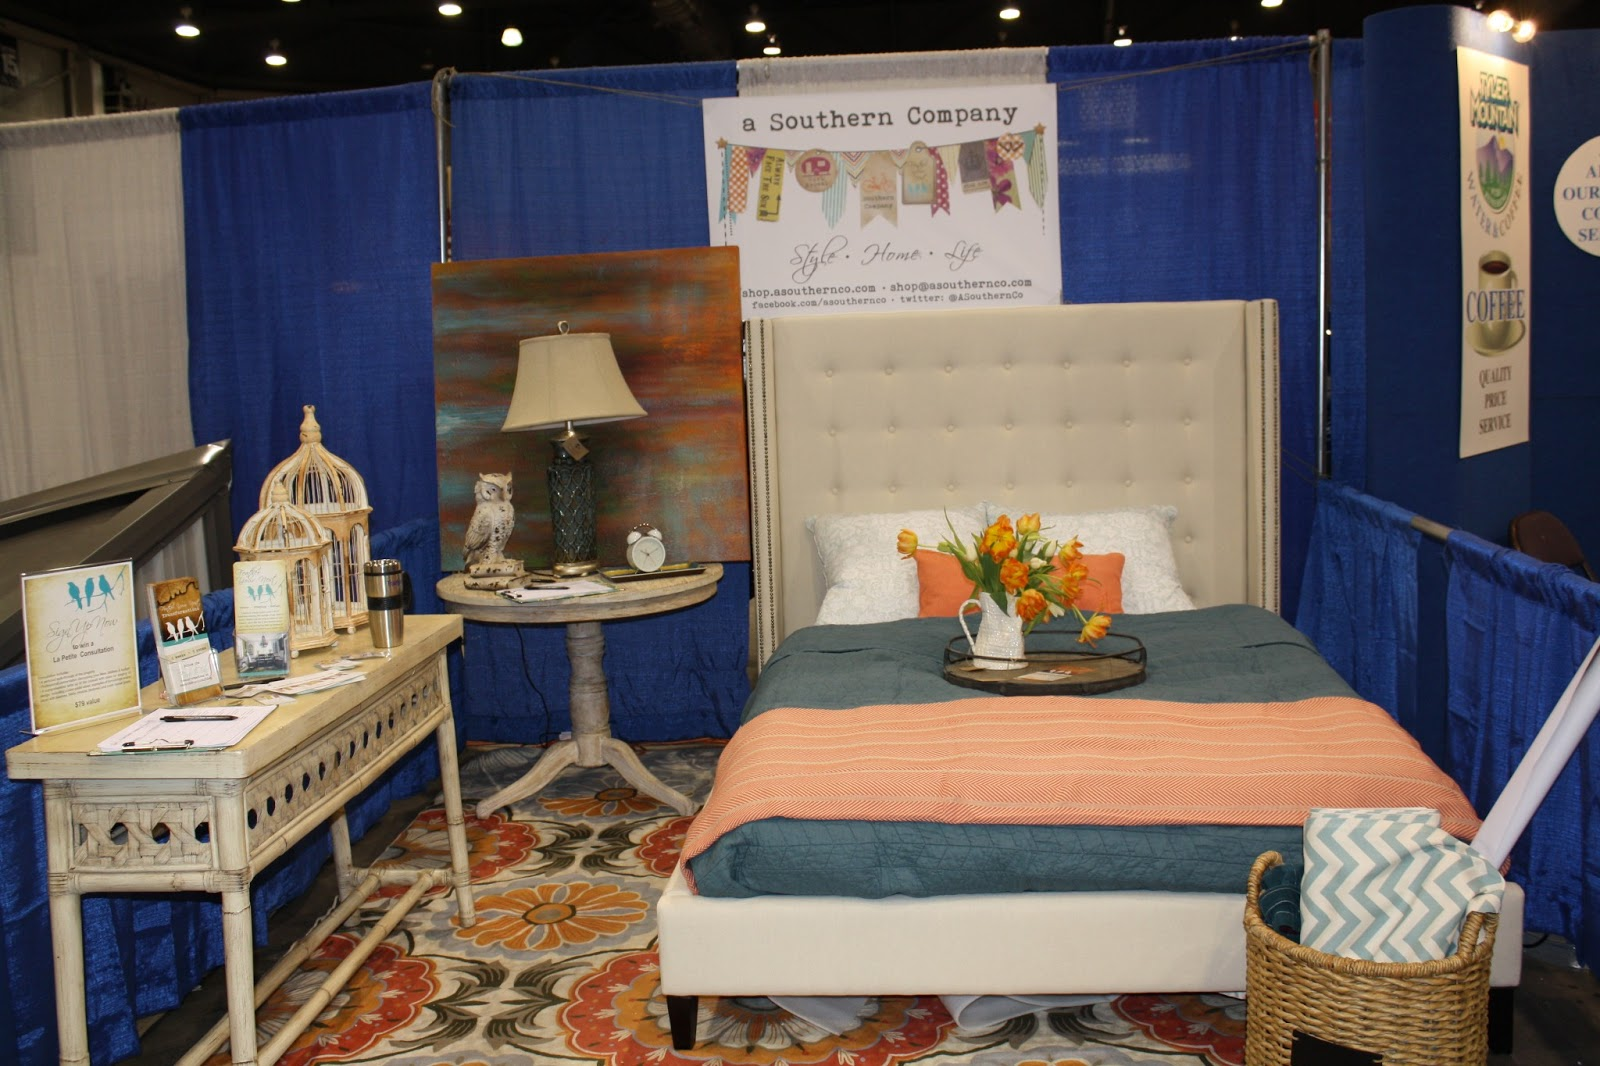 A Southern Company Wsaz Home And Garden Show